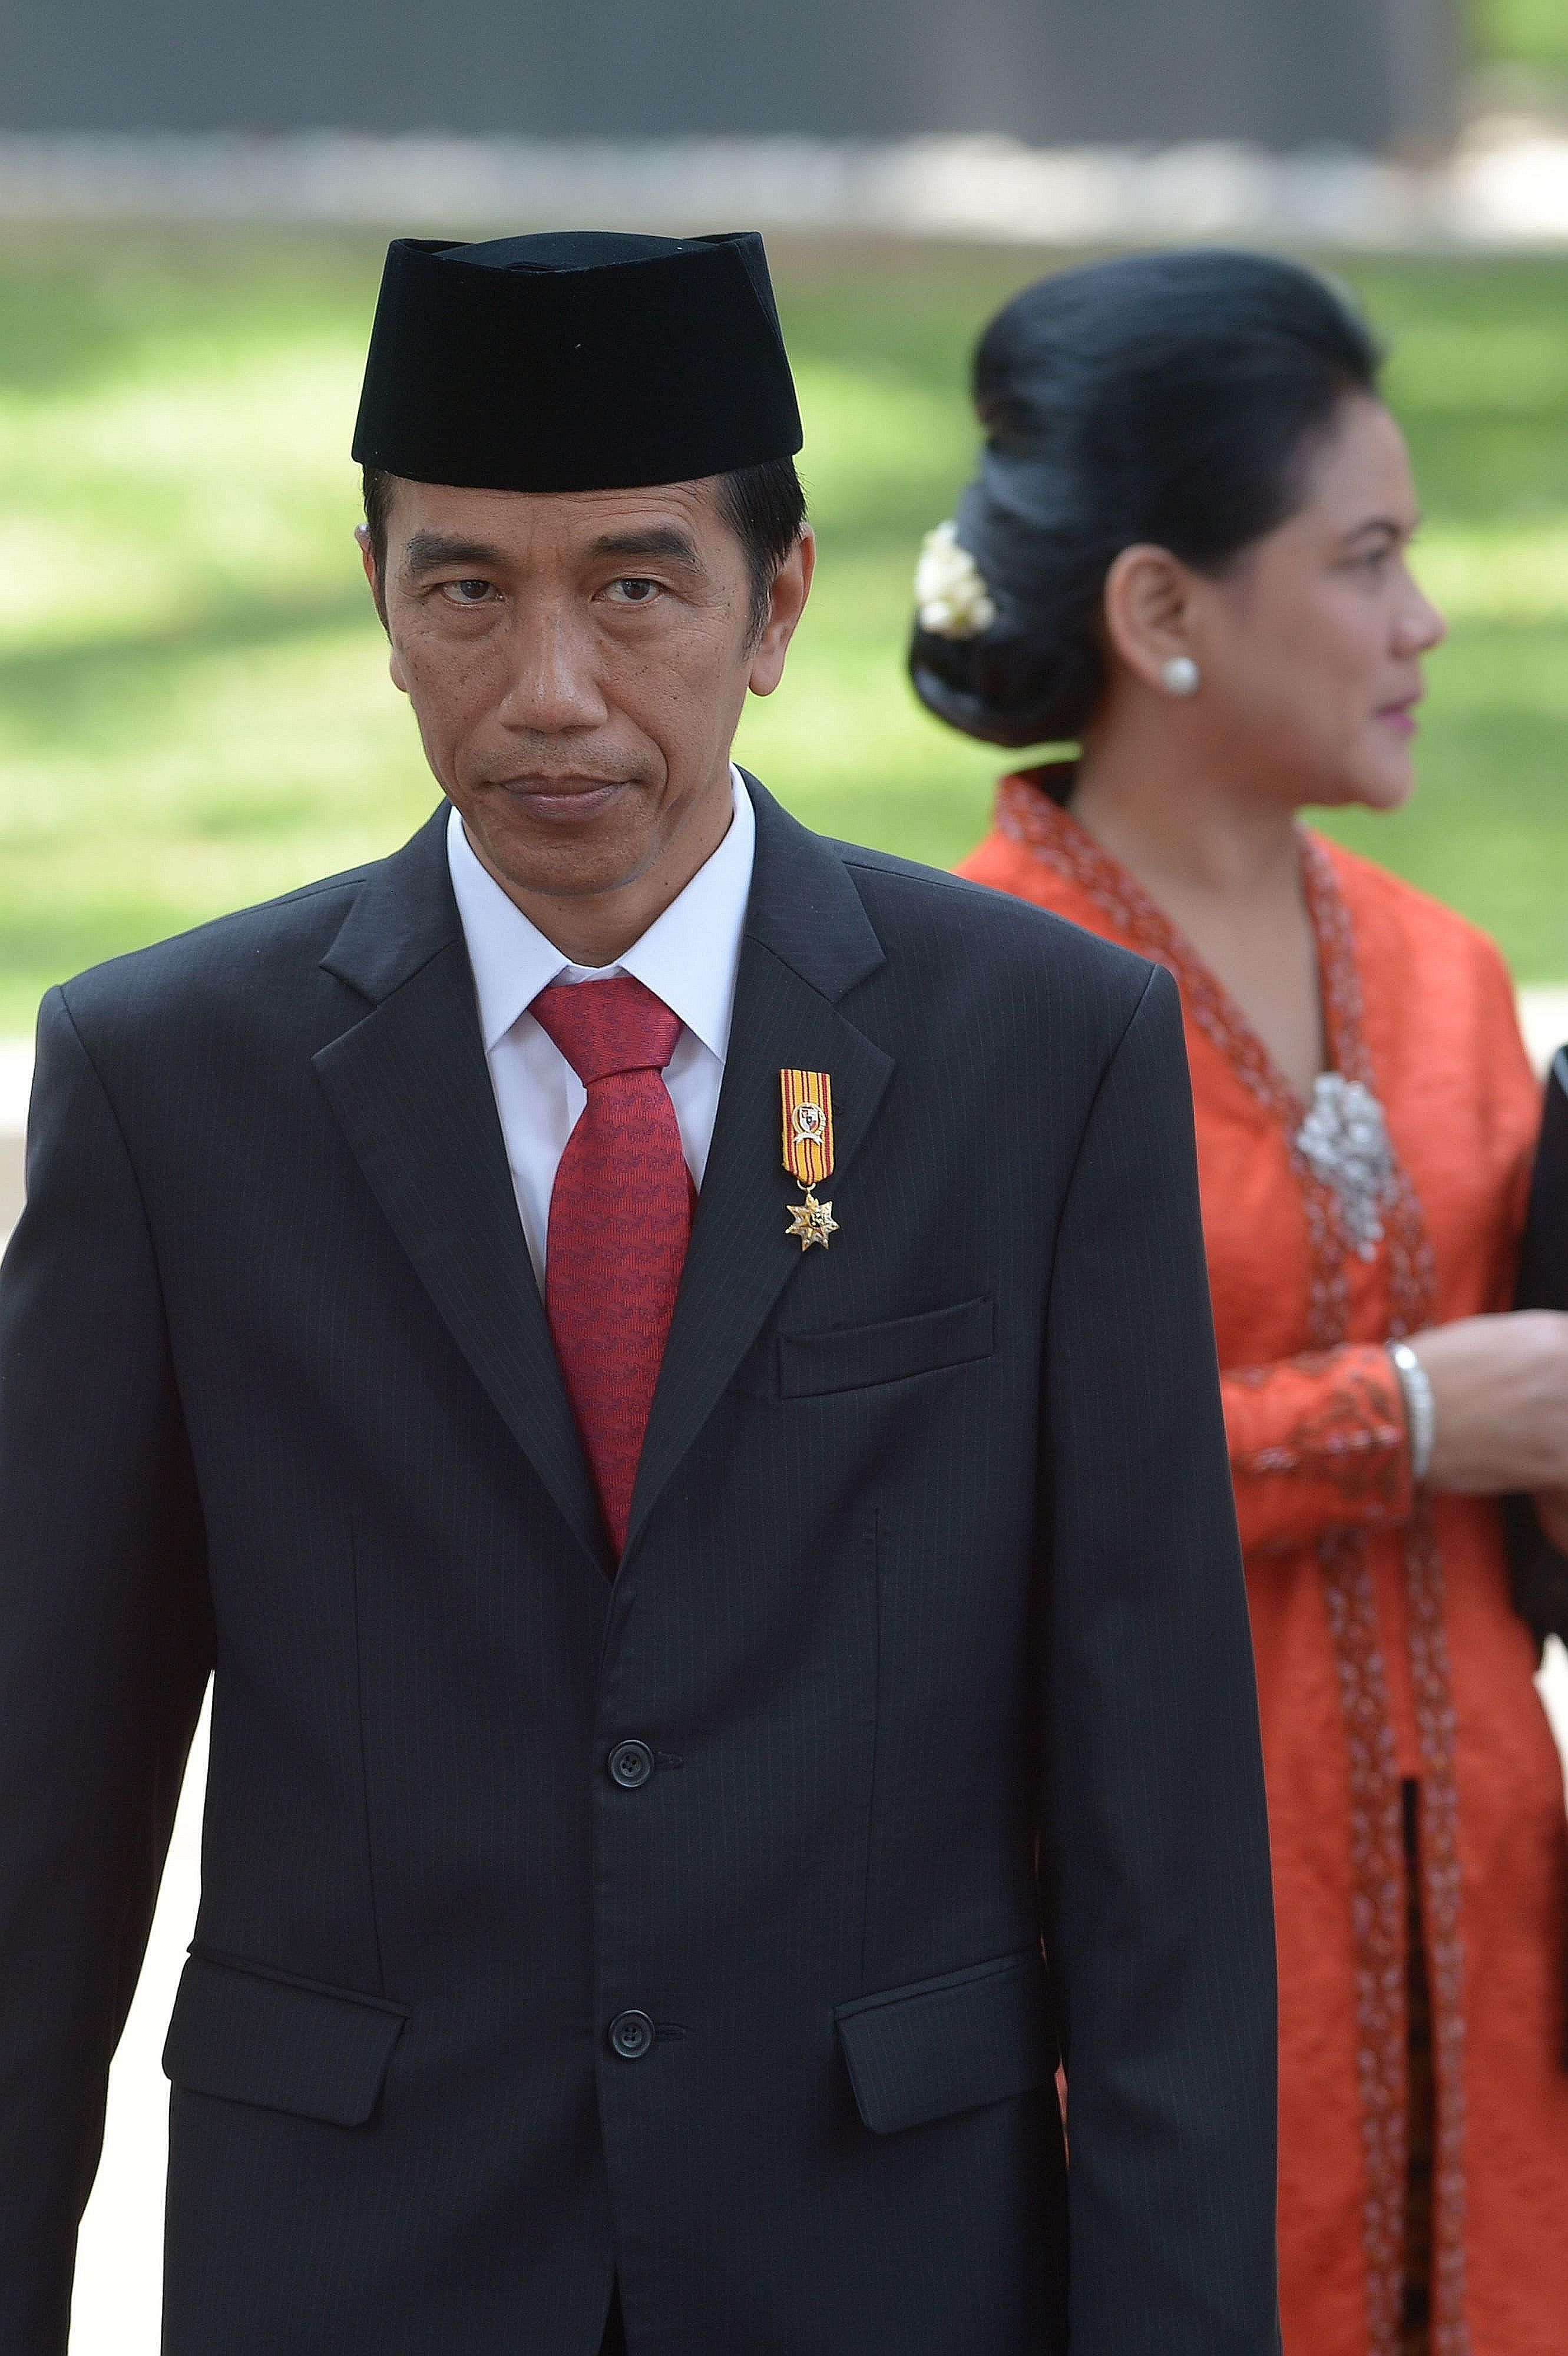 Indonesian President Joko Widodo with his wife Iriana Widodo at the presidential palace in Jakarta. President Joko's humility and approachability have endeared him to Indonesians. He embodies the way in which a people's democracy can unite to fight t